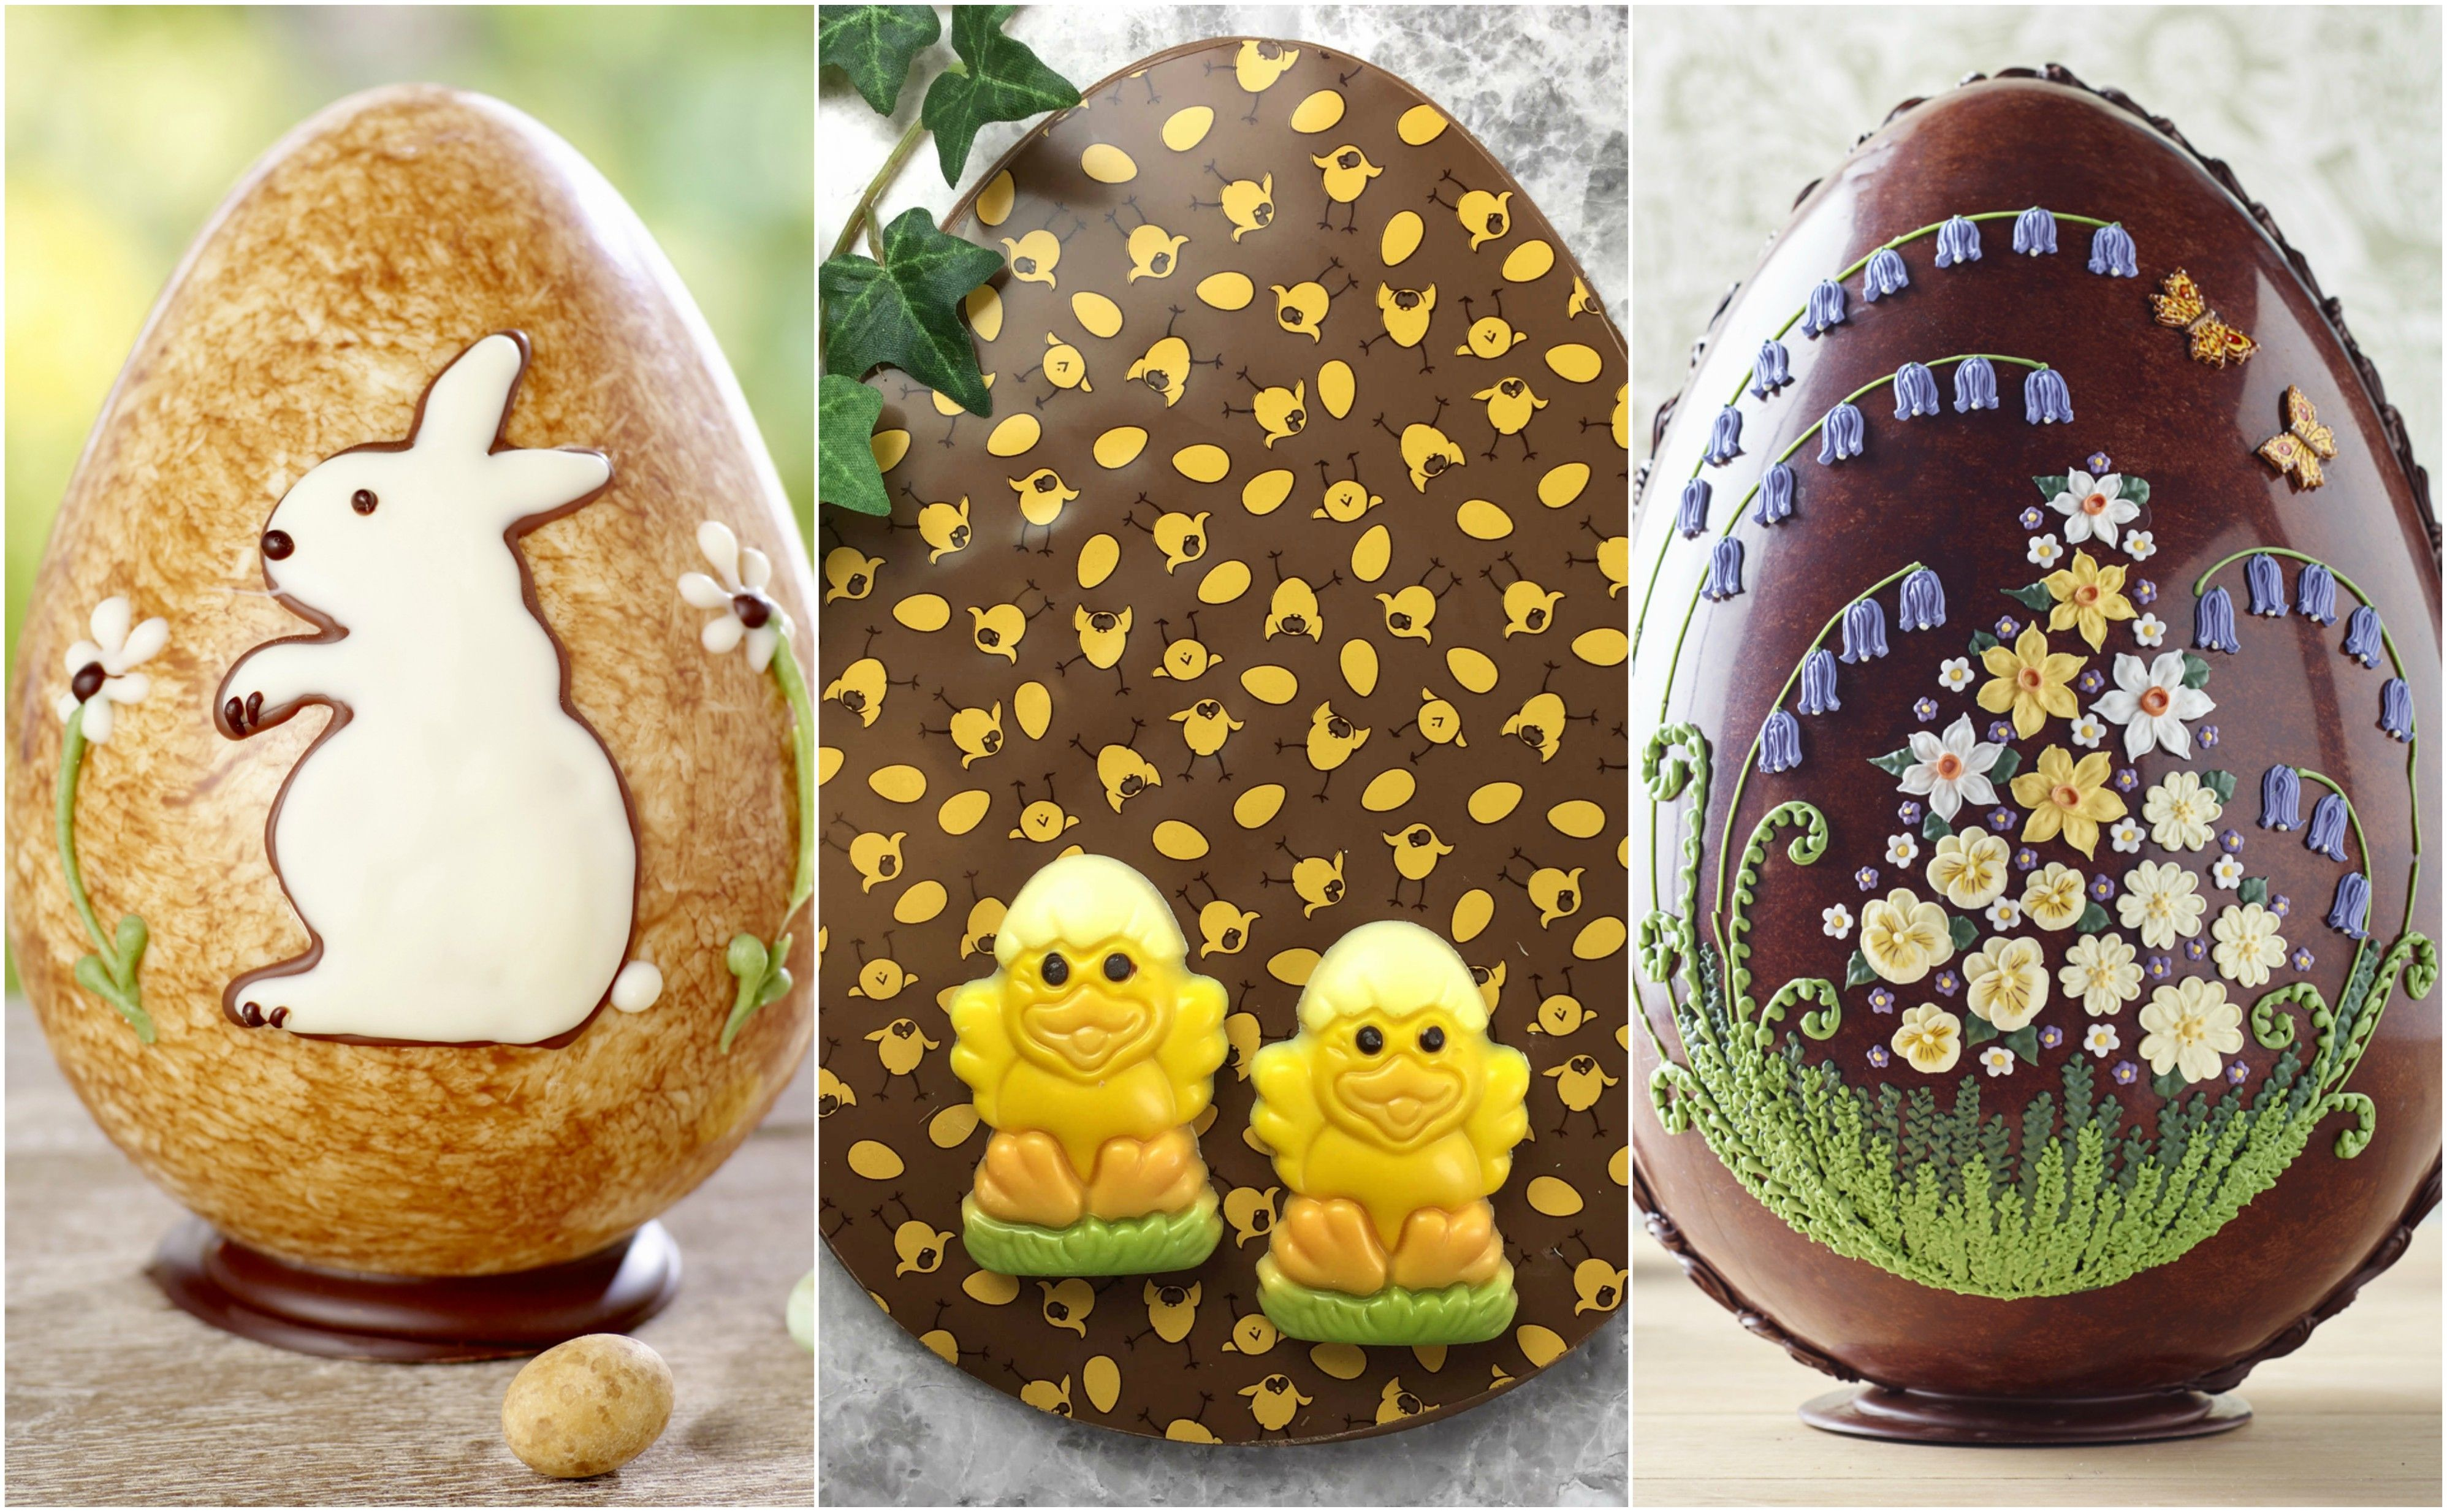 Chocolate Easter eggs: what to buy